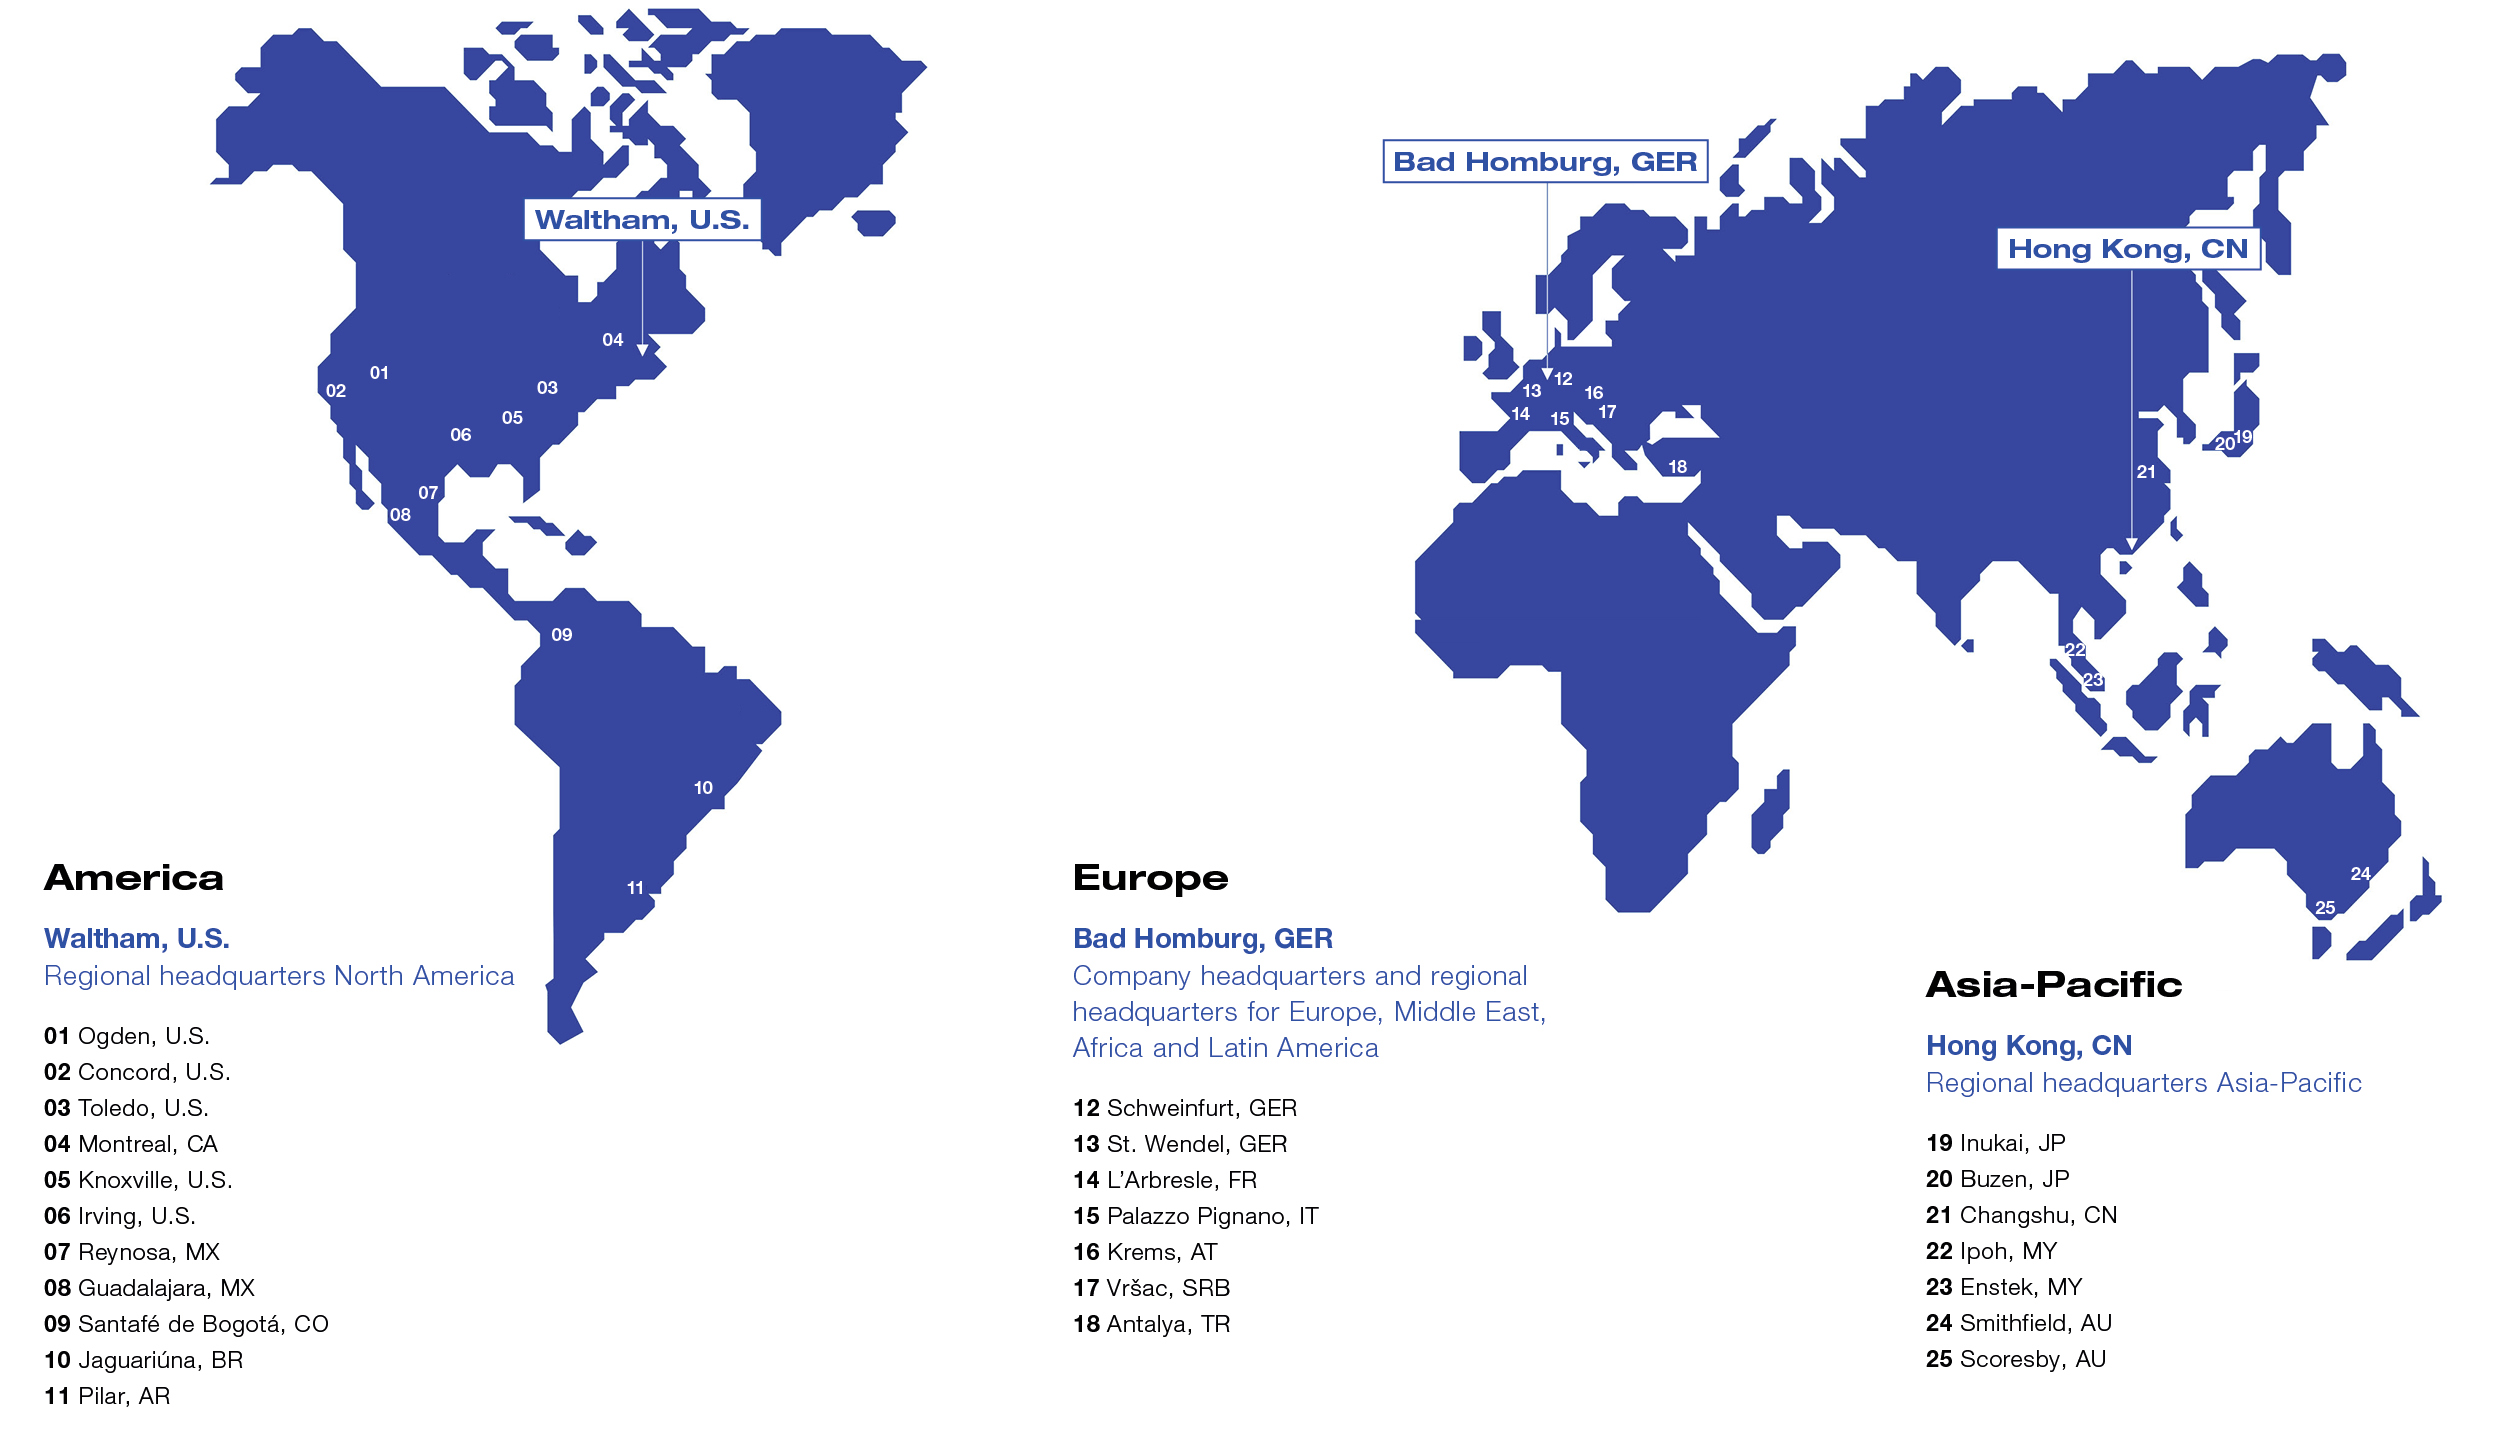 Fresenius Medical Care Worldmap